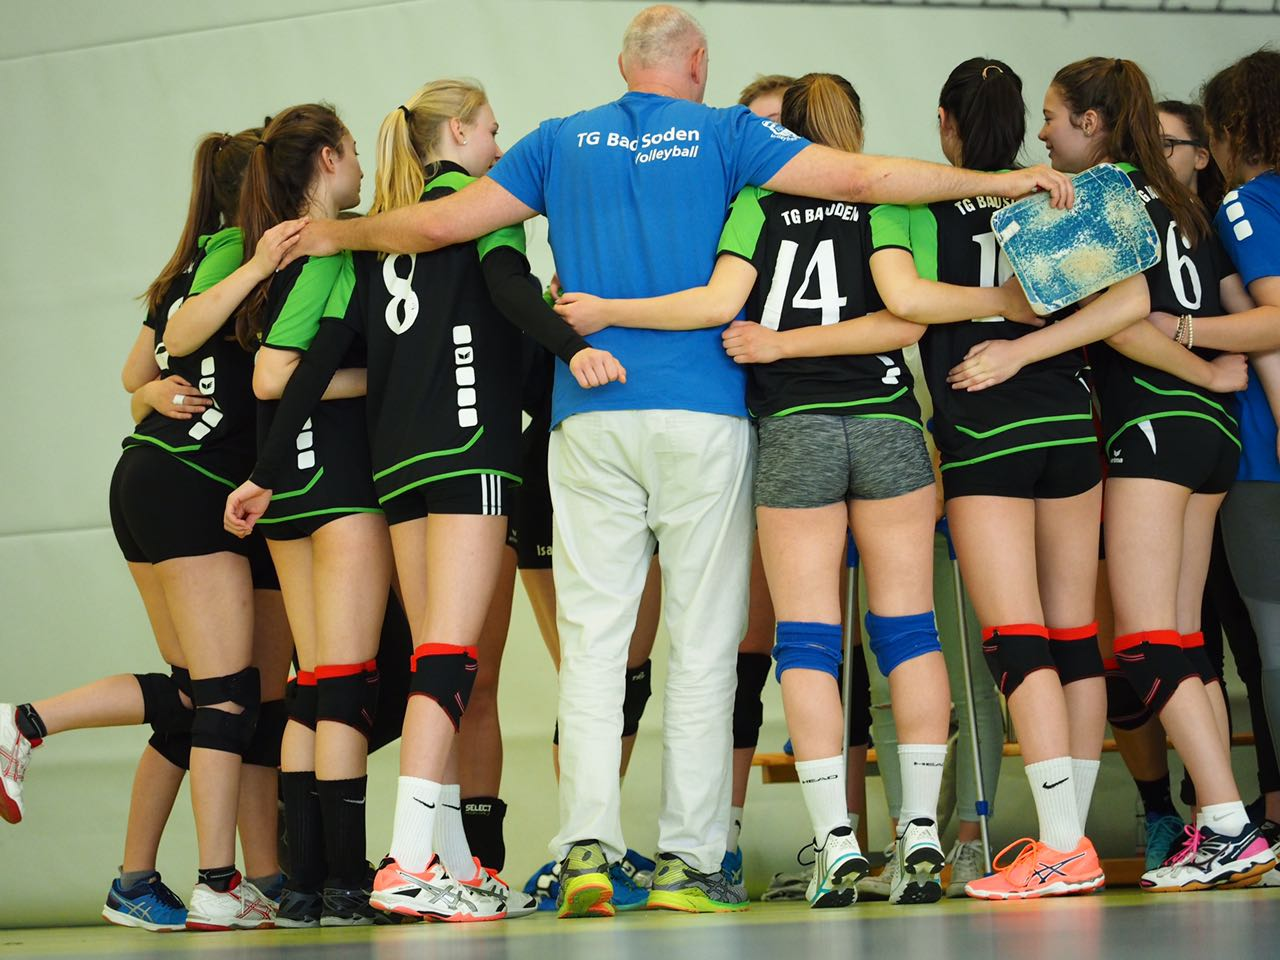 volleyball damen 2 bundesliga